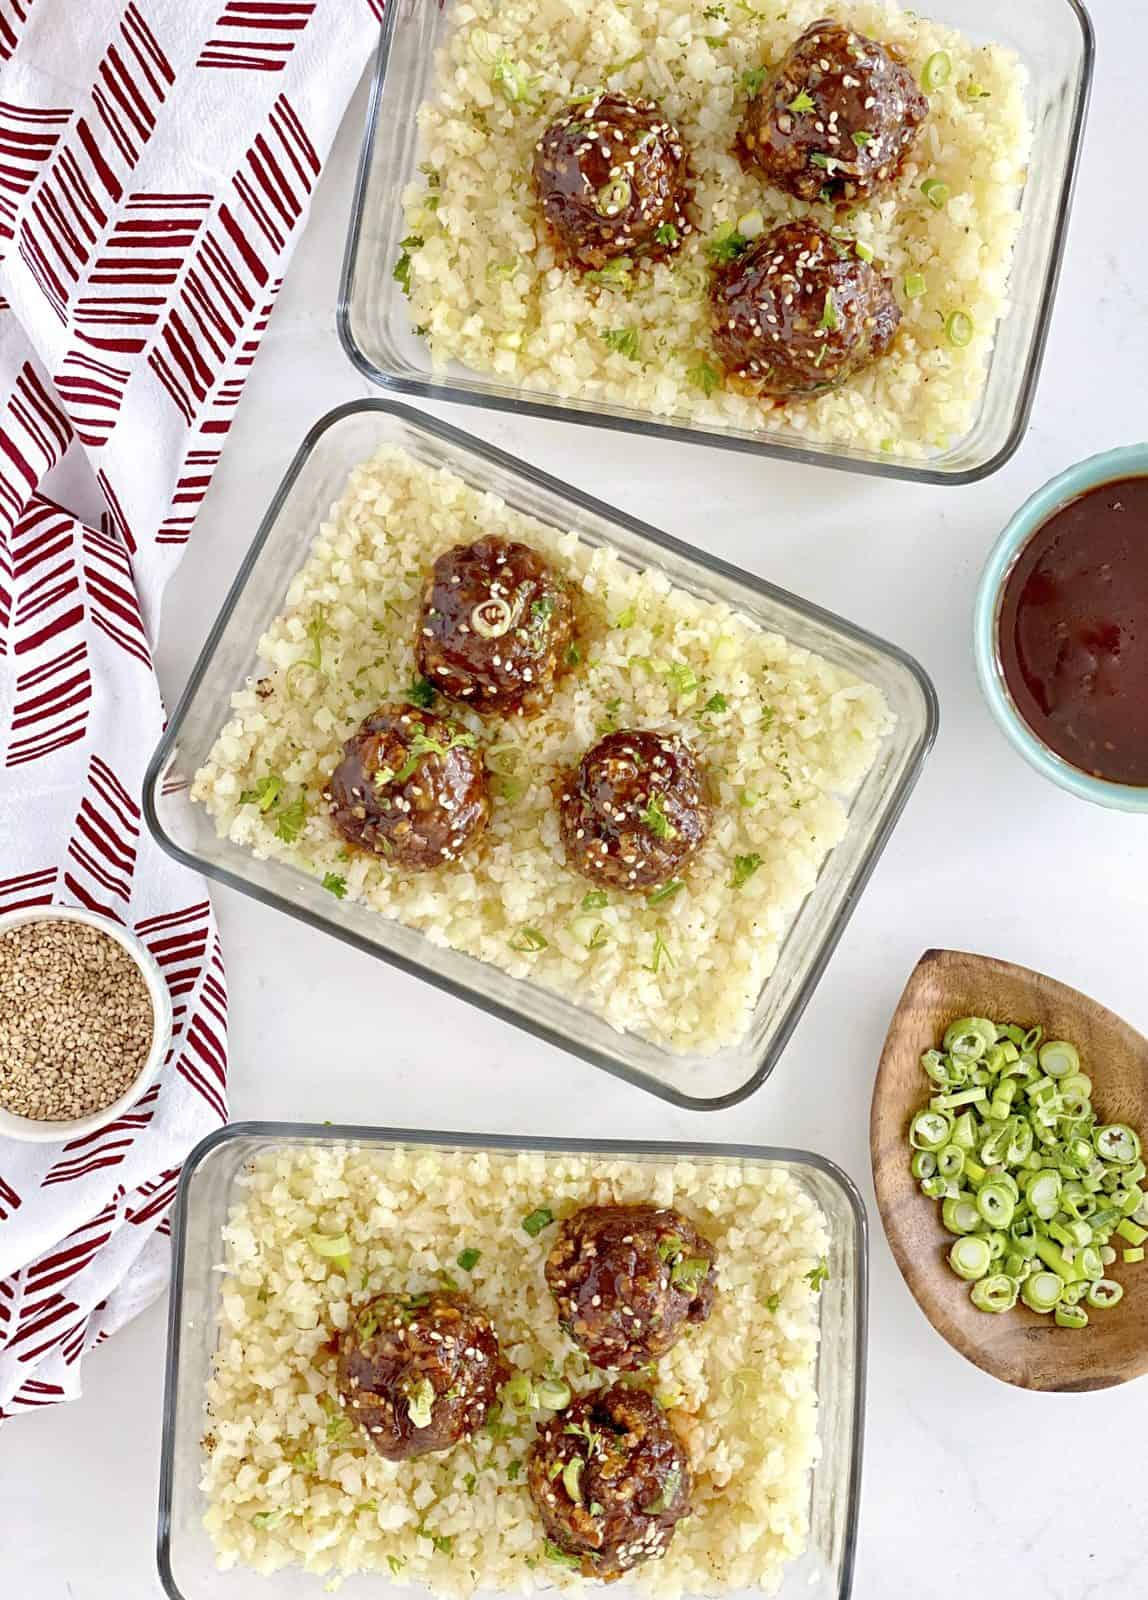 over the top shot of glass containers with meatballs and cauliflower rice